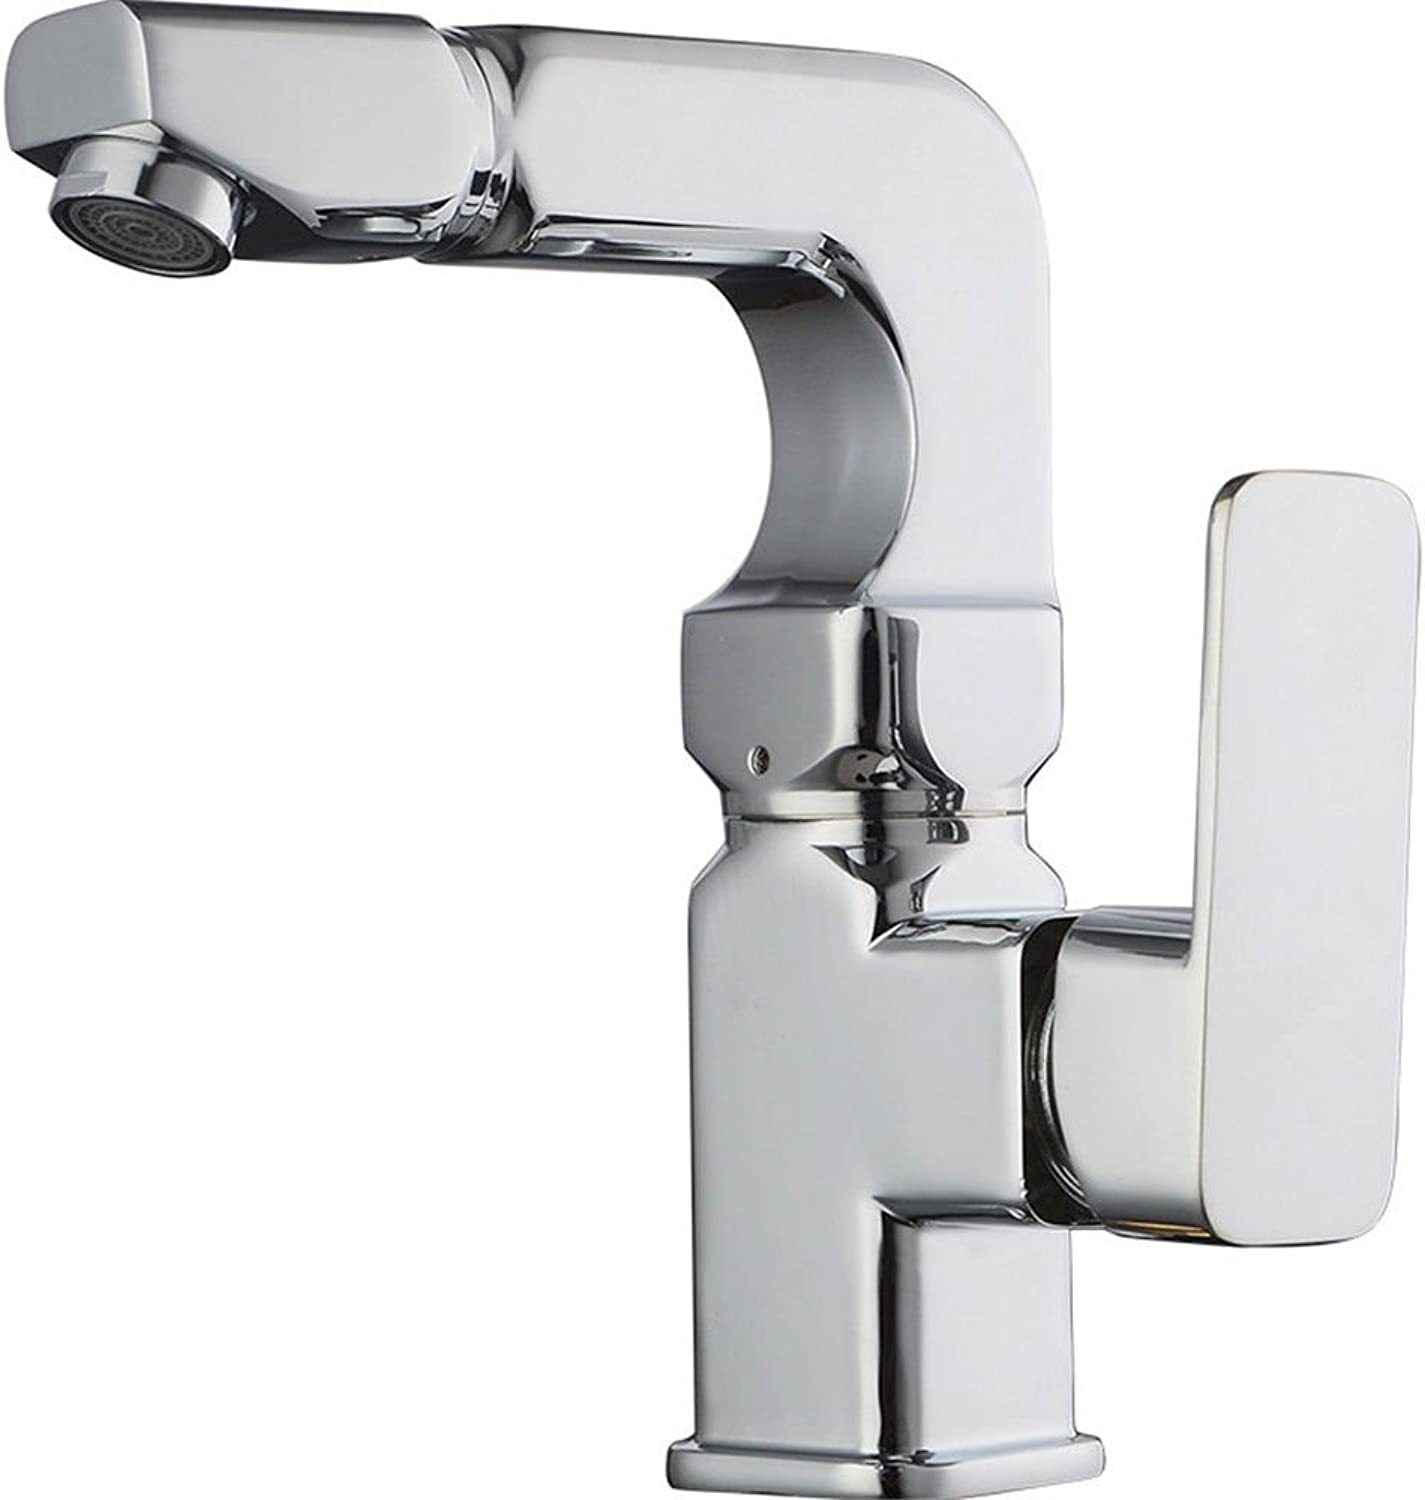 ETERNAL QUALITY Bathroom Sink Basin Tap Brass Mixer Tap Washroom Mixer Faucet The Kitchen cold water faucet 360-degree swivel kitchen faucet kitchen faucet two water-bras